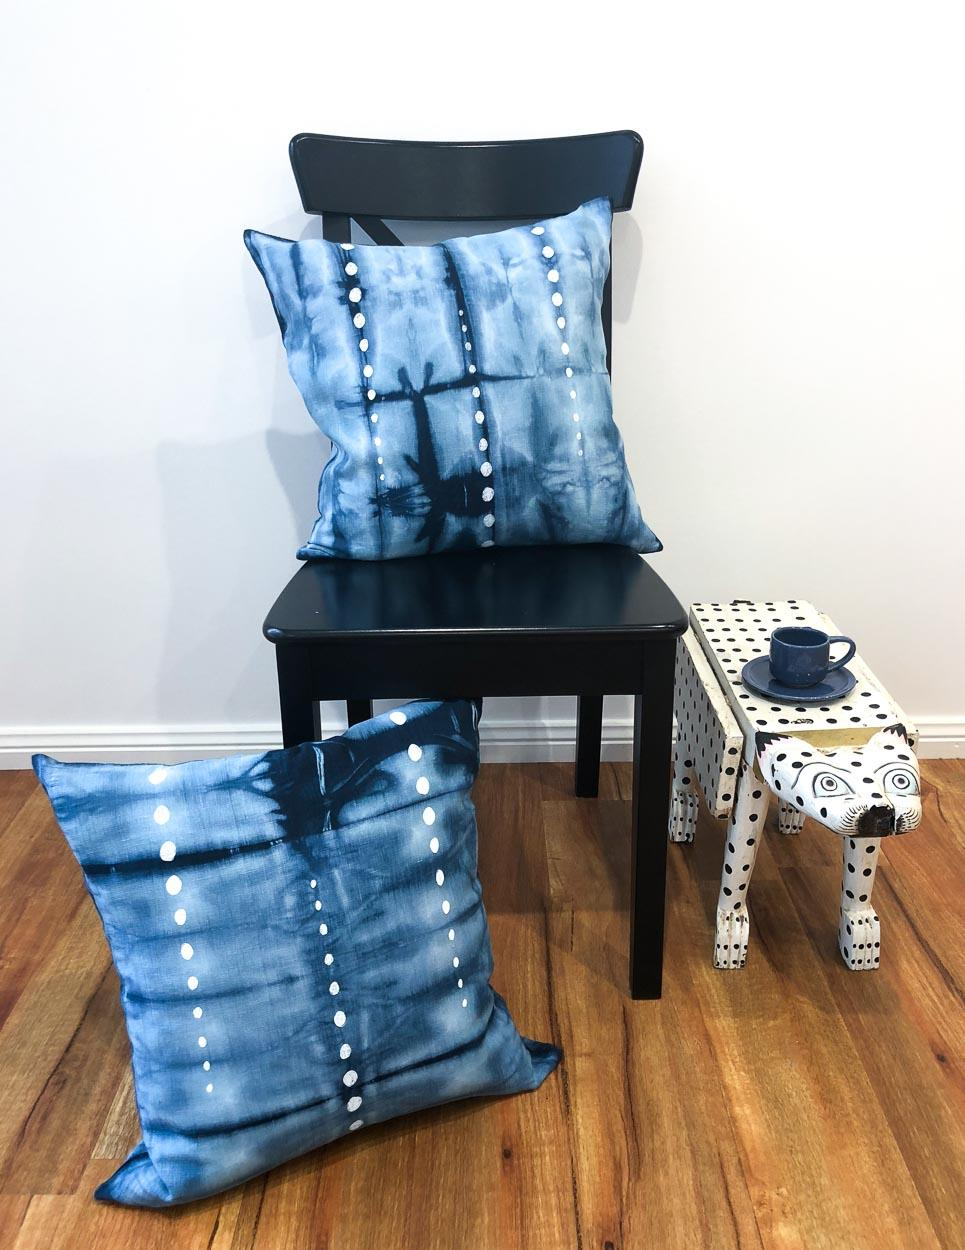 Shibori Cushion Cover with Spots